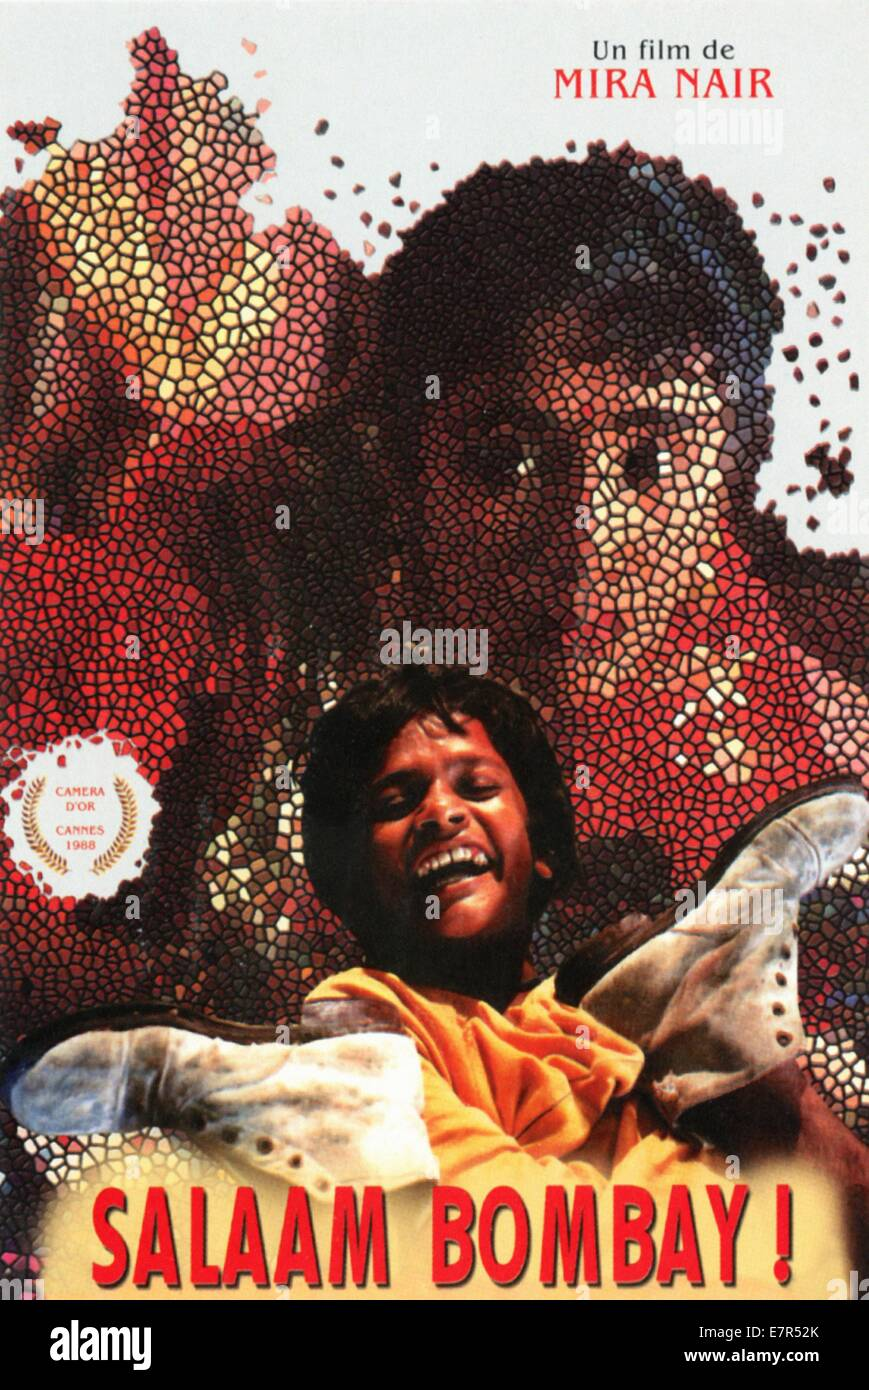 salaam-bombay!-year-1988-india-director-